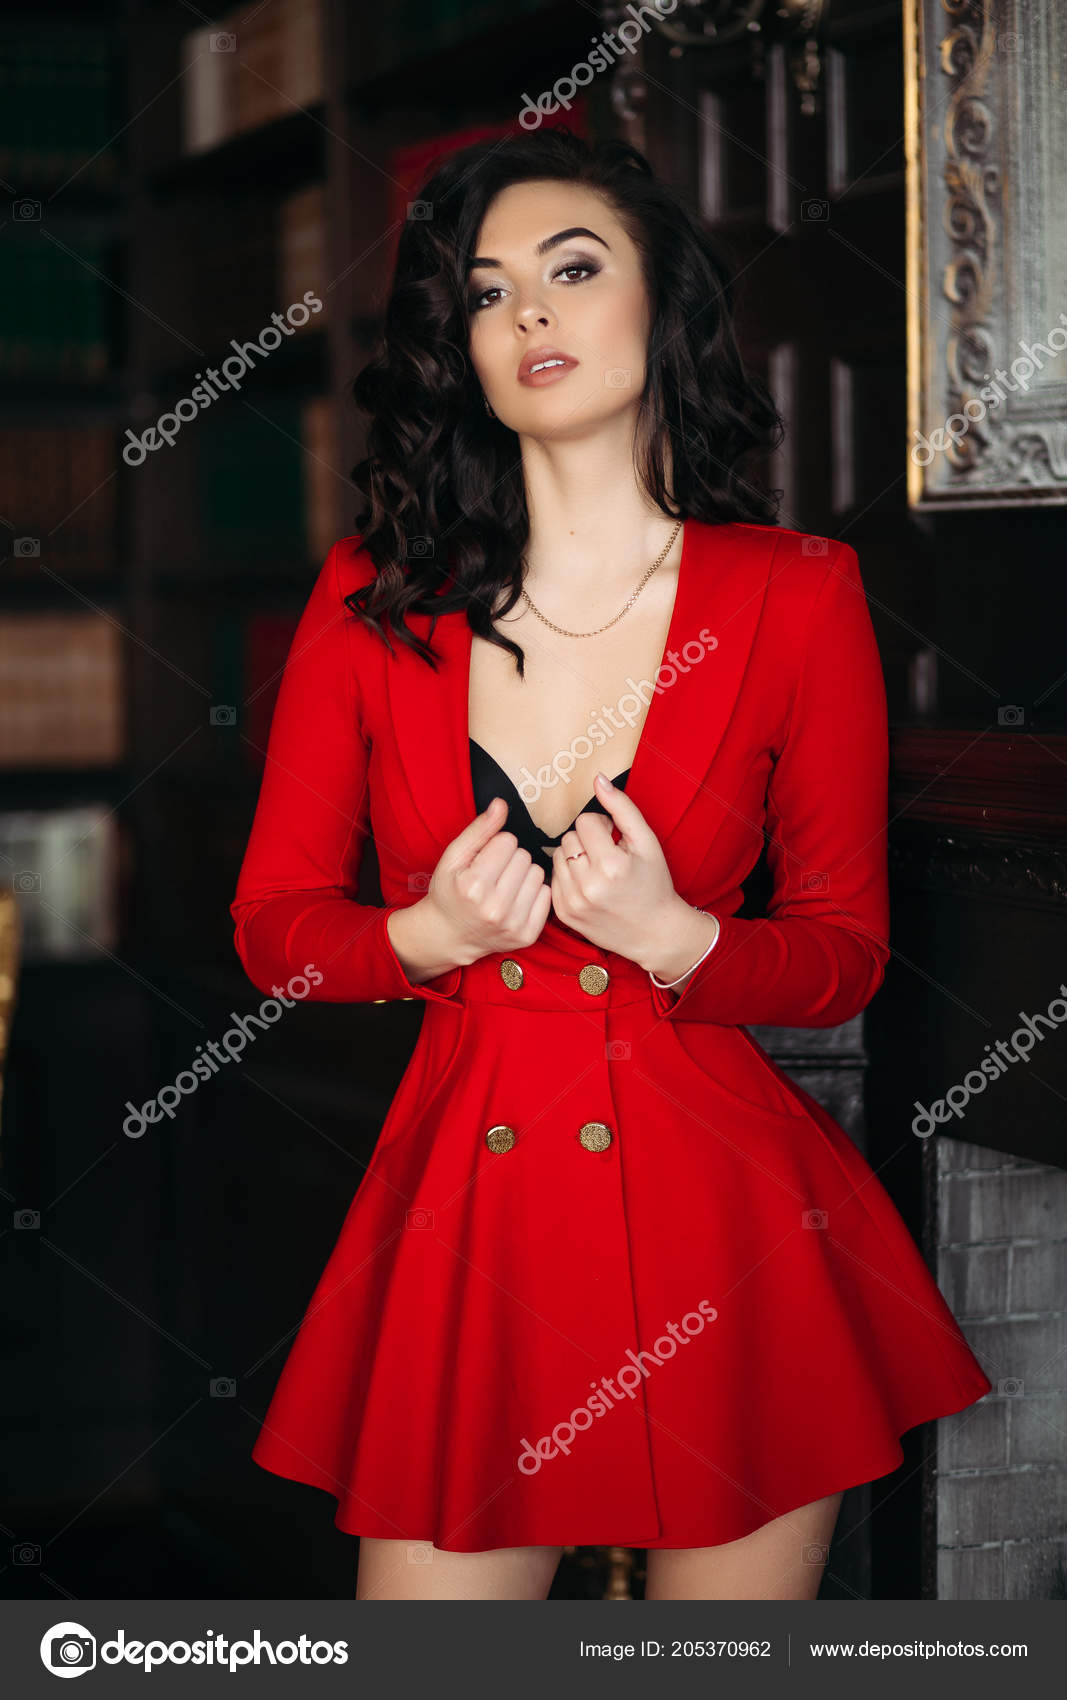 red dress undresiing touching her chest